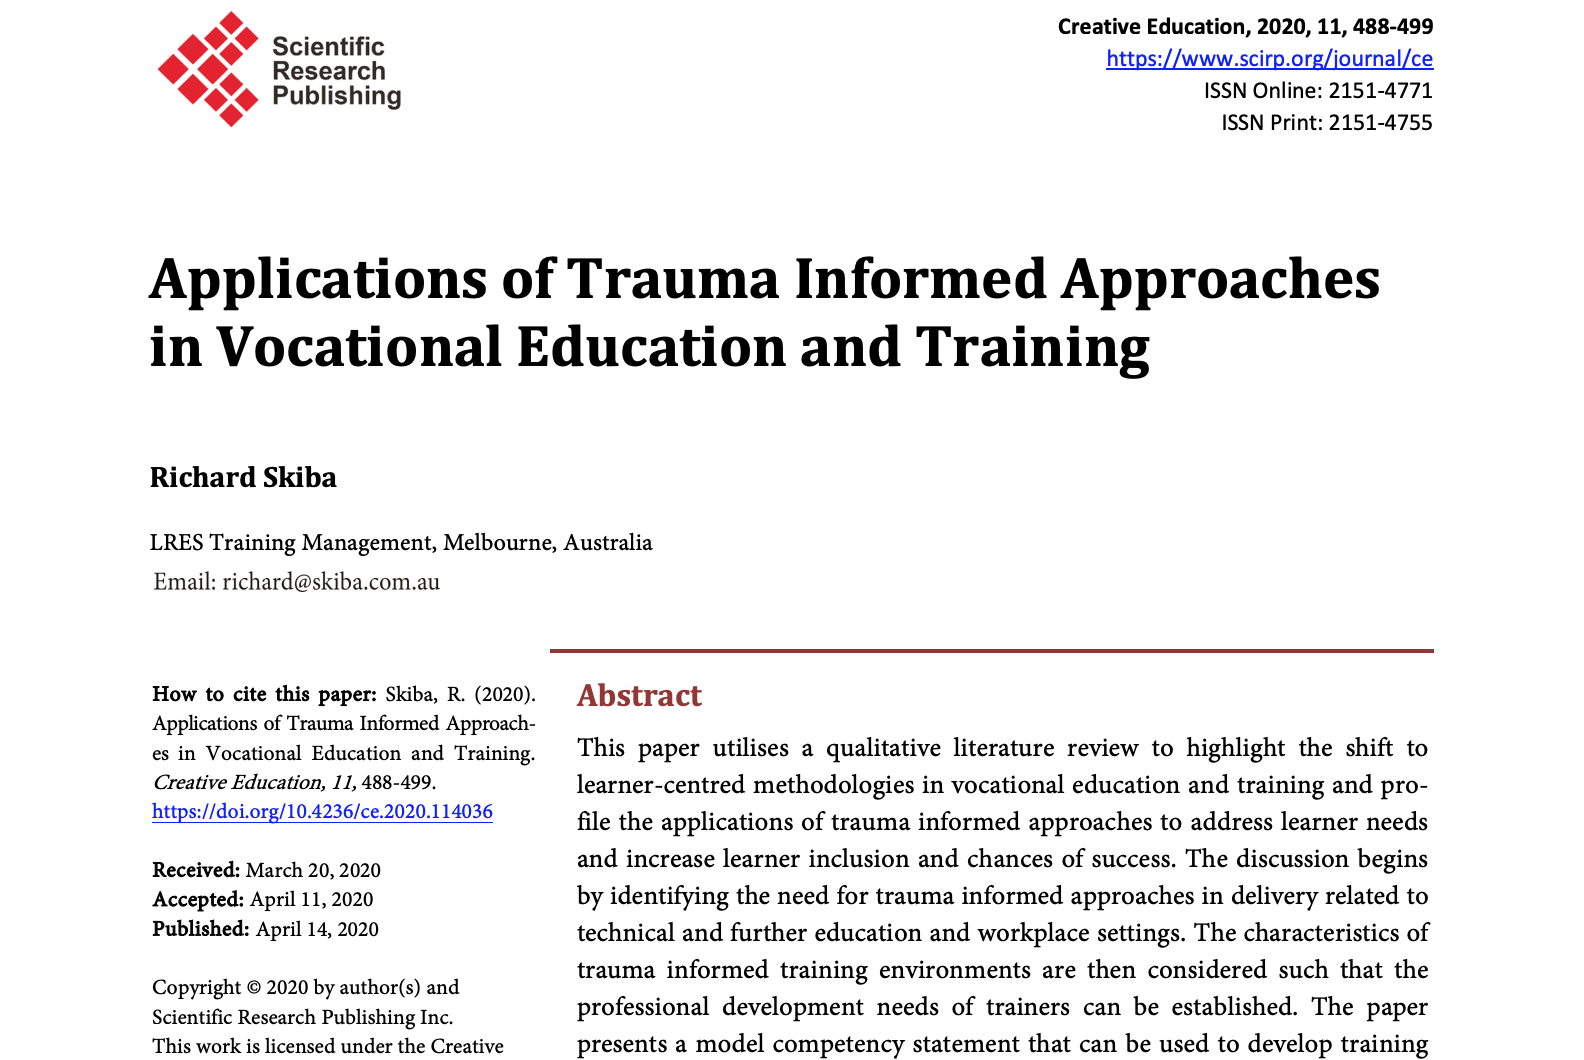 Applications of Trauma Informed Approaches in Vocational Education and Training